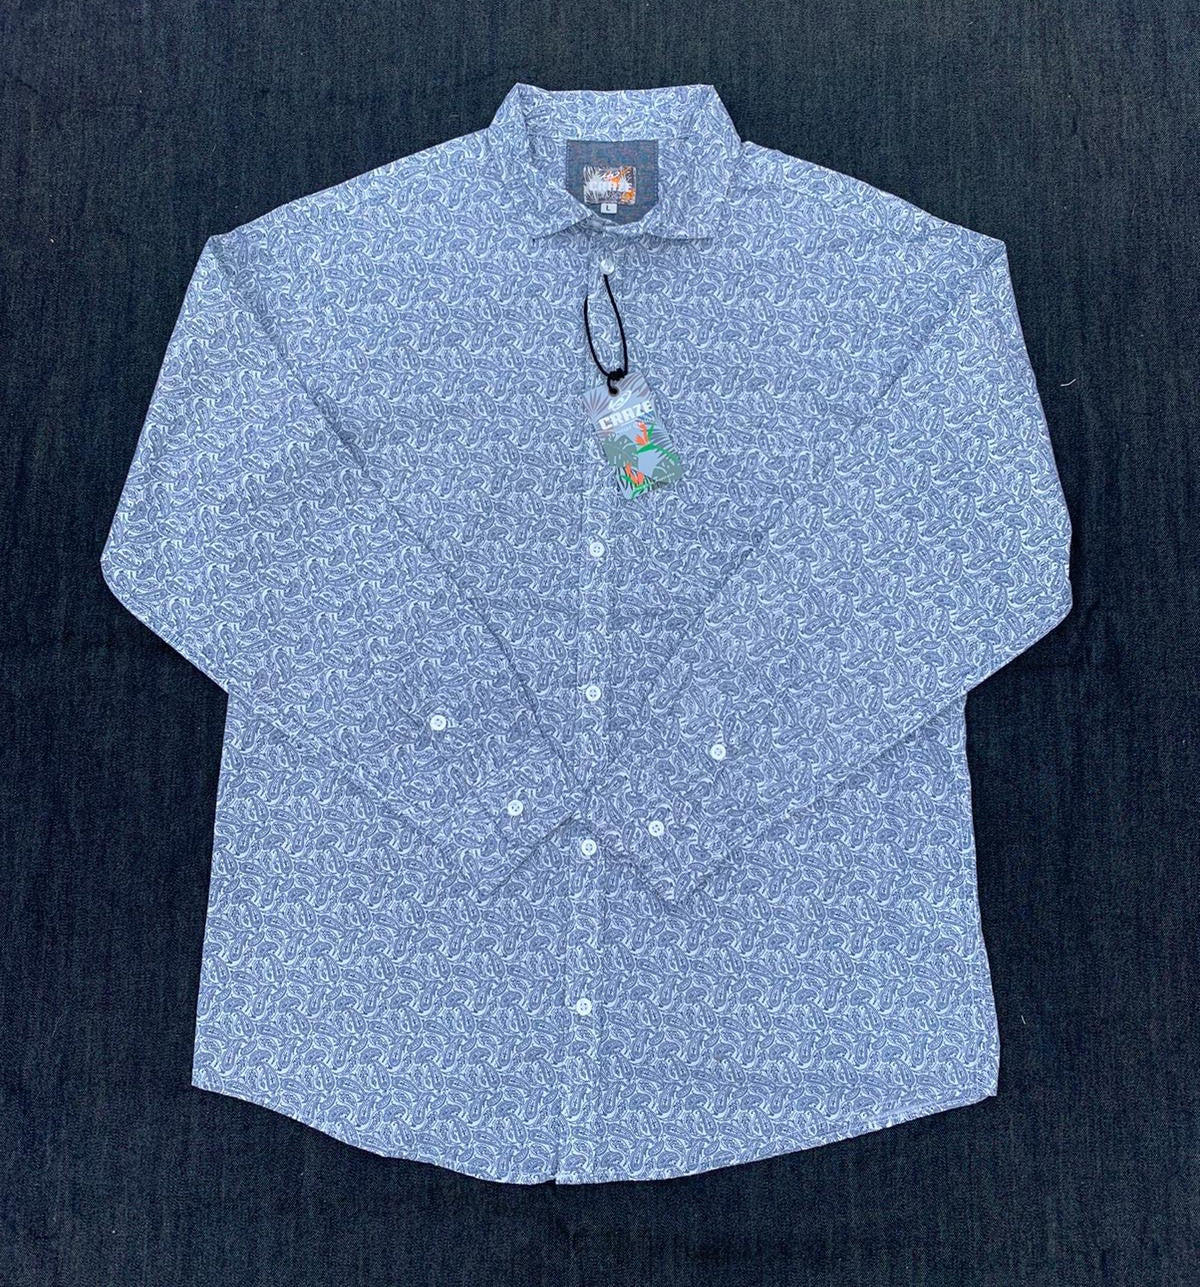 LIGHT BLUE PAISLEY PRINT SHIRT